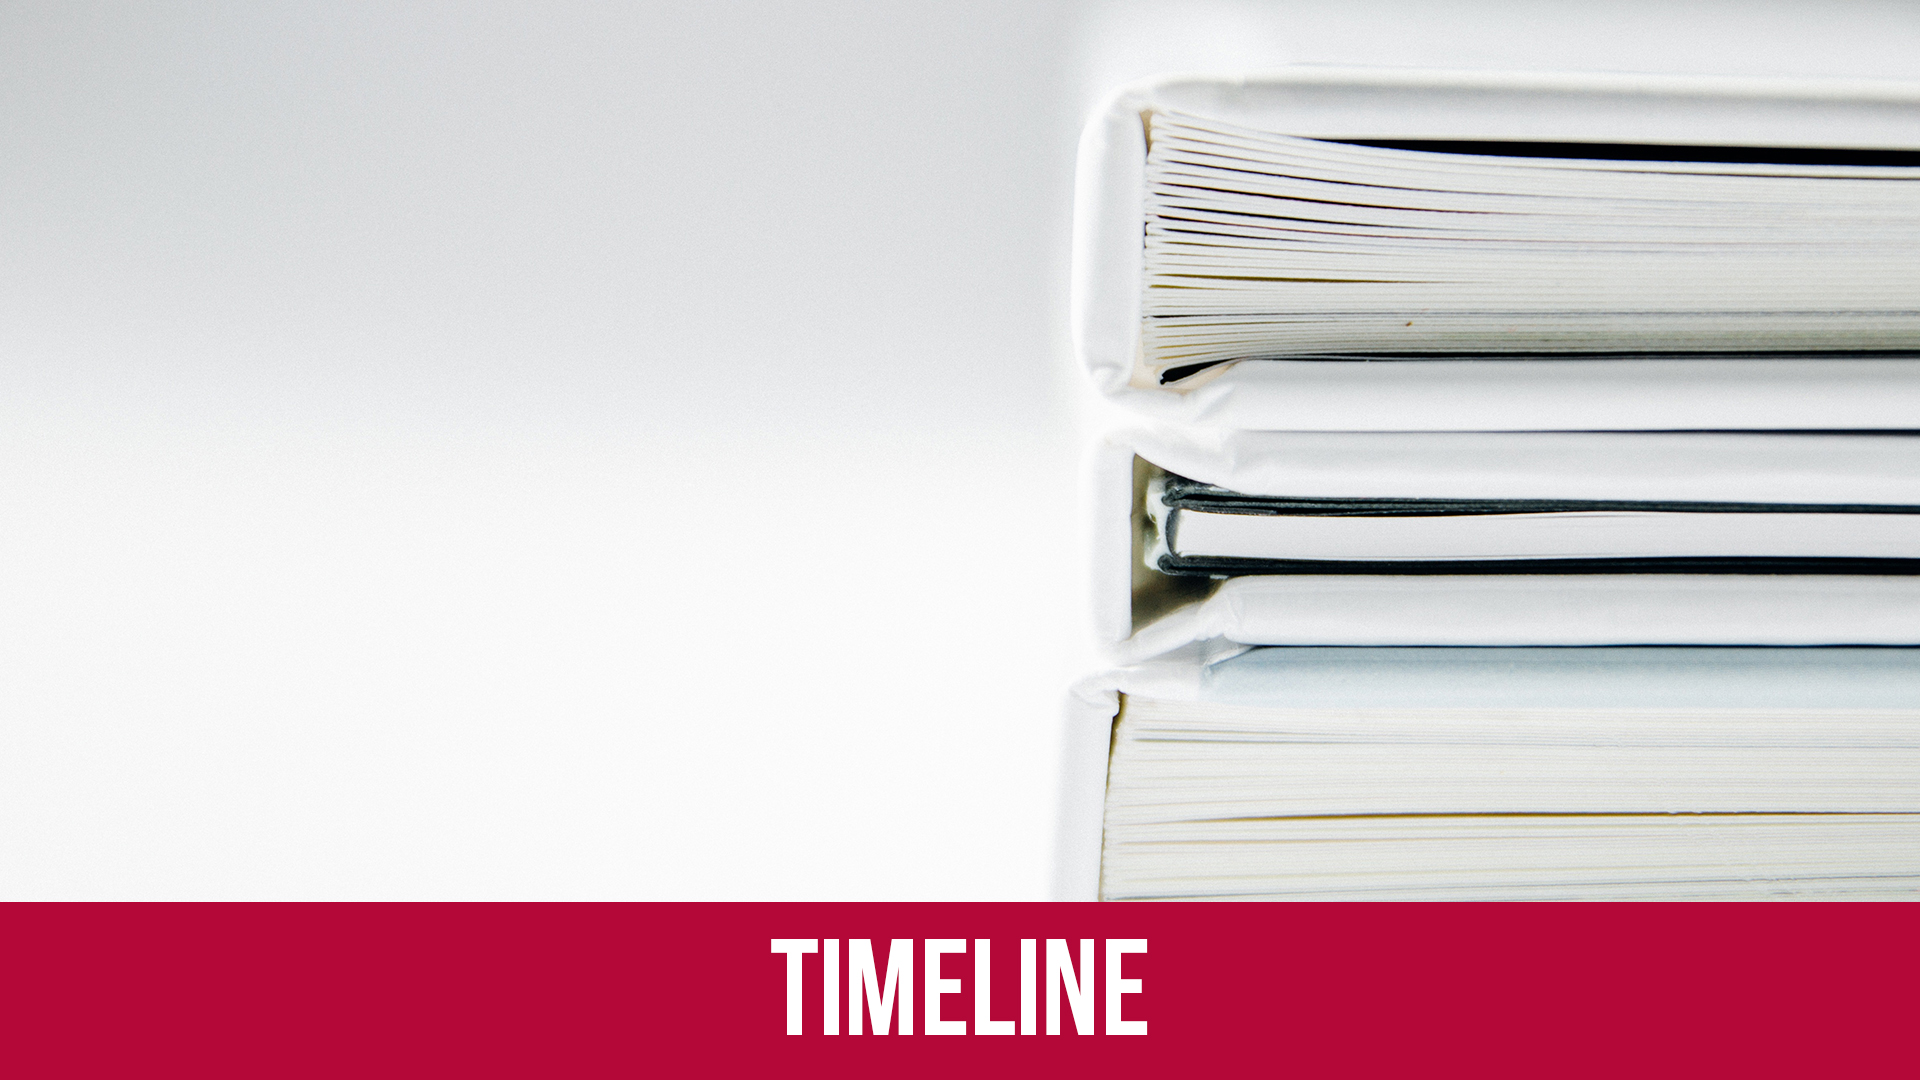 Box Academic Advising Timeline